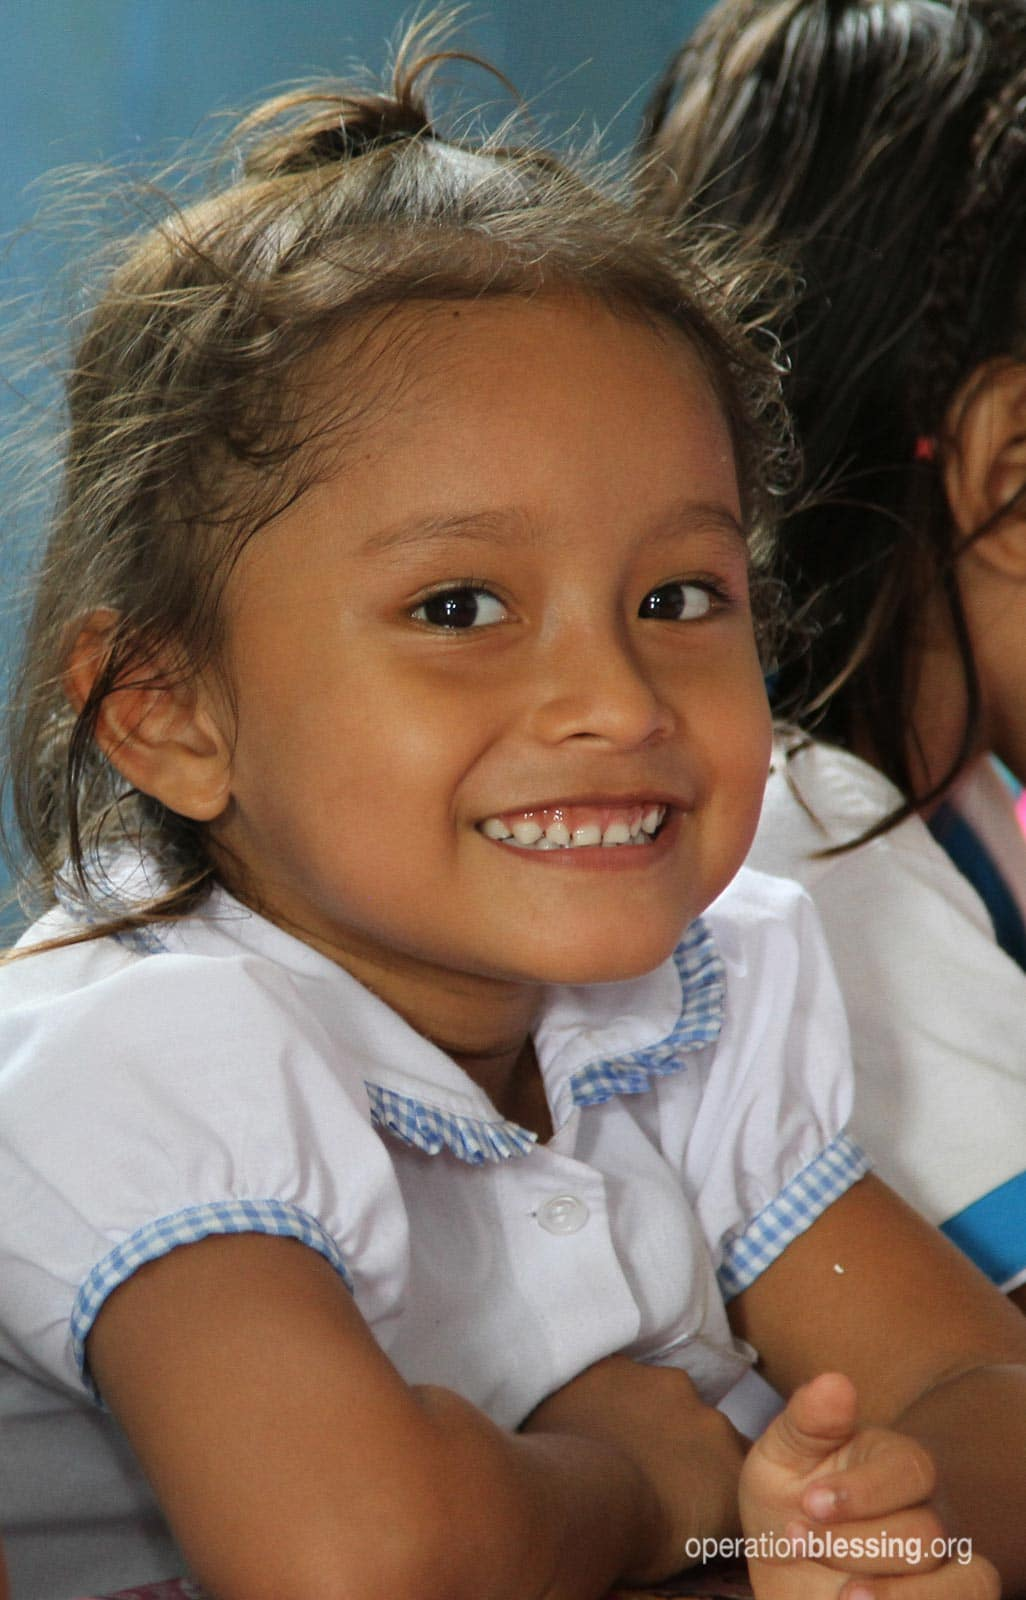 A little girl smiles while enjoying an Operation Blessing provided meal at the San Jose School in Belén.